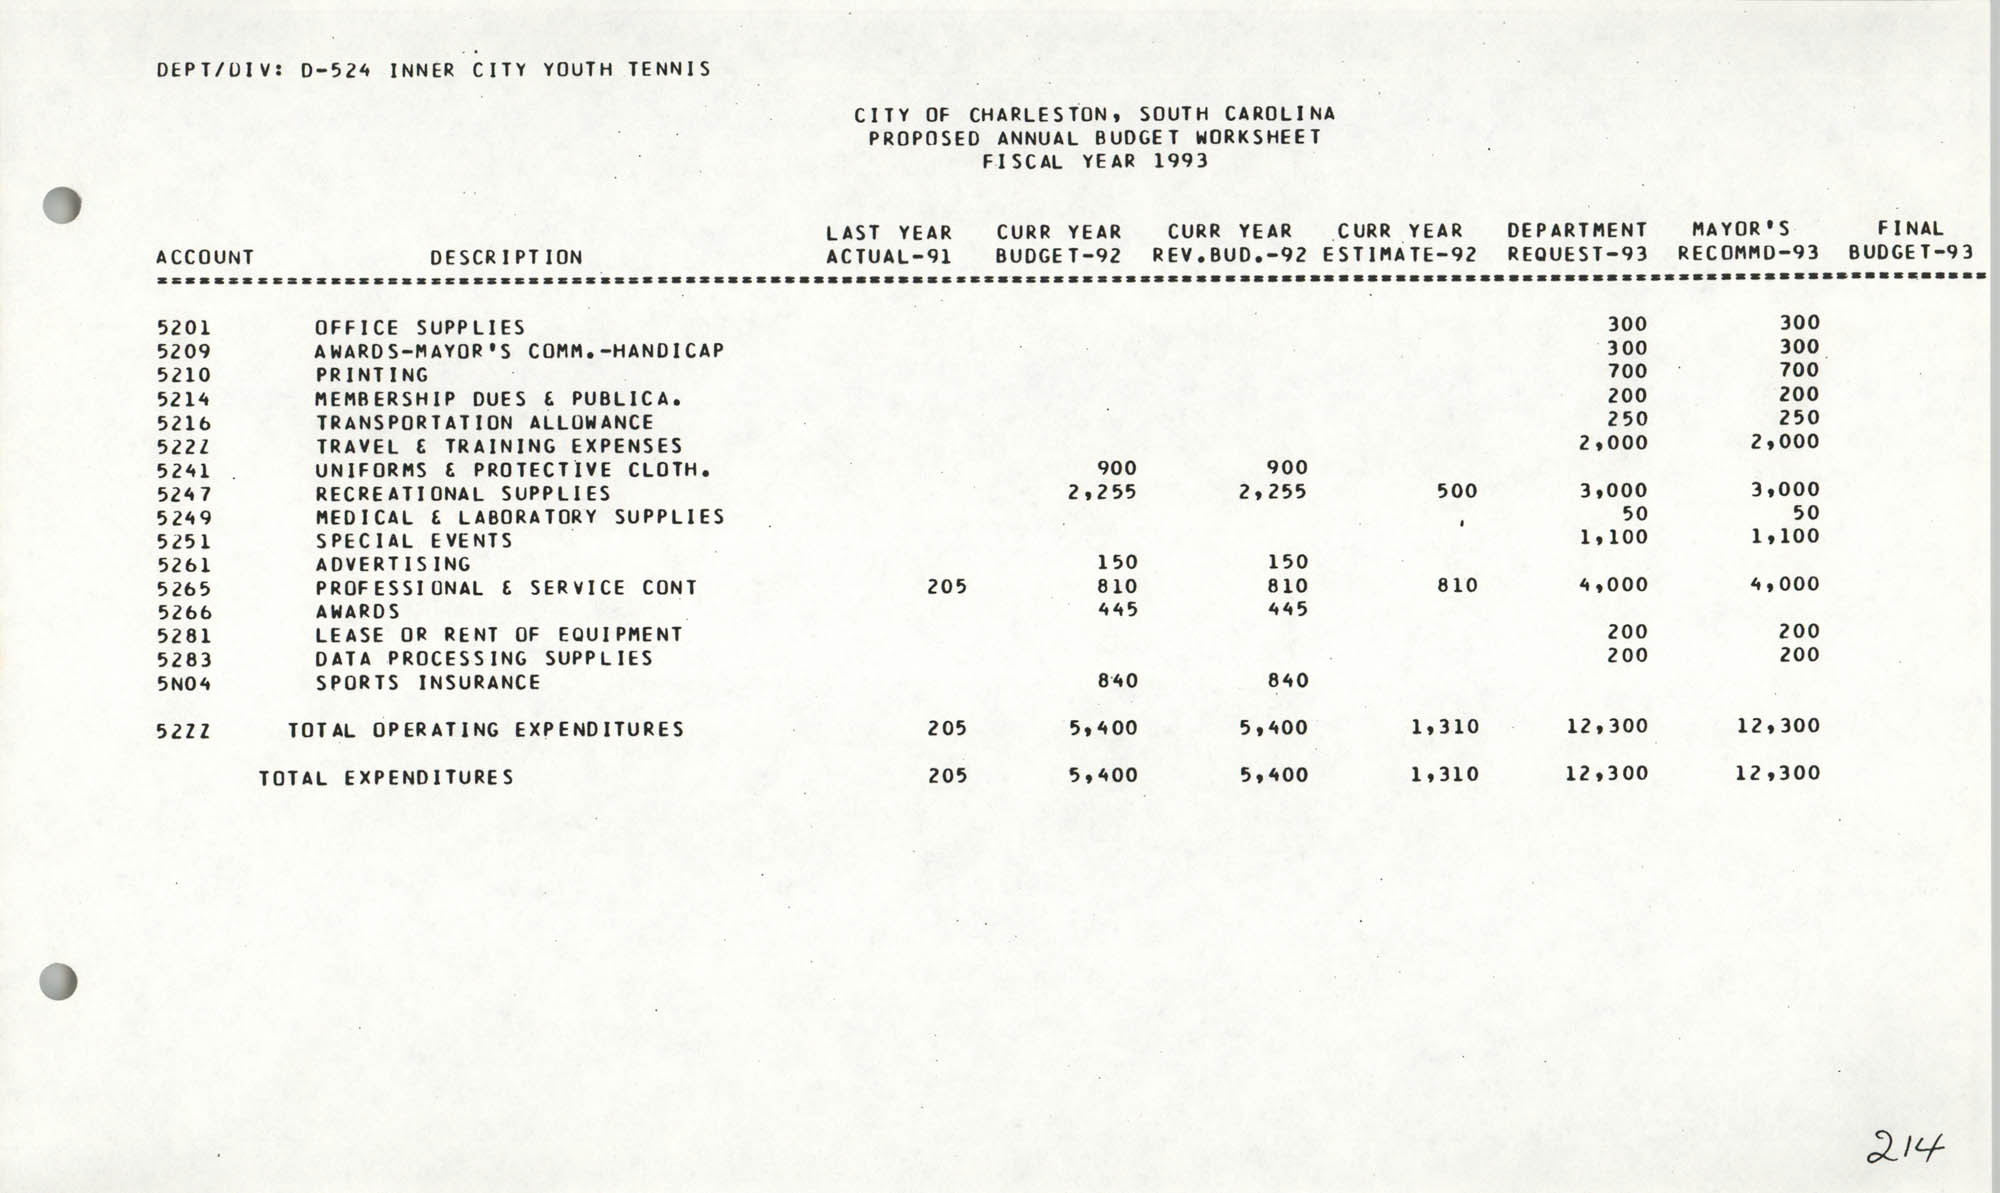 The City Council of Charleston, South Carolina, 1993 Budget, Page 214